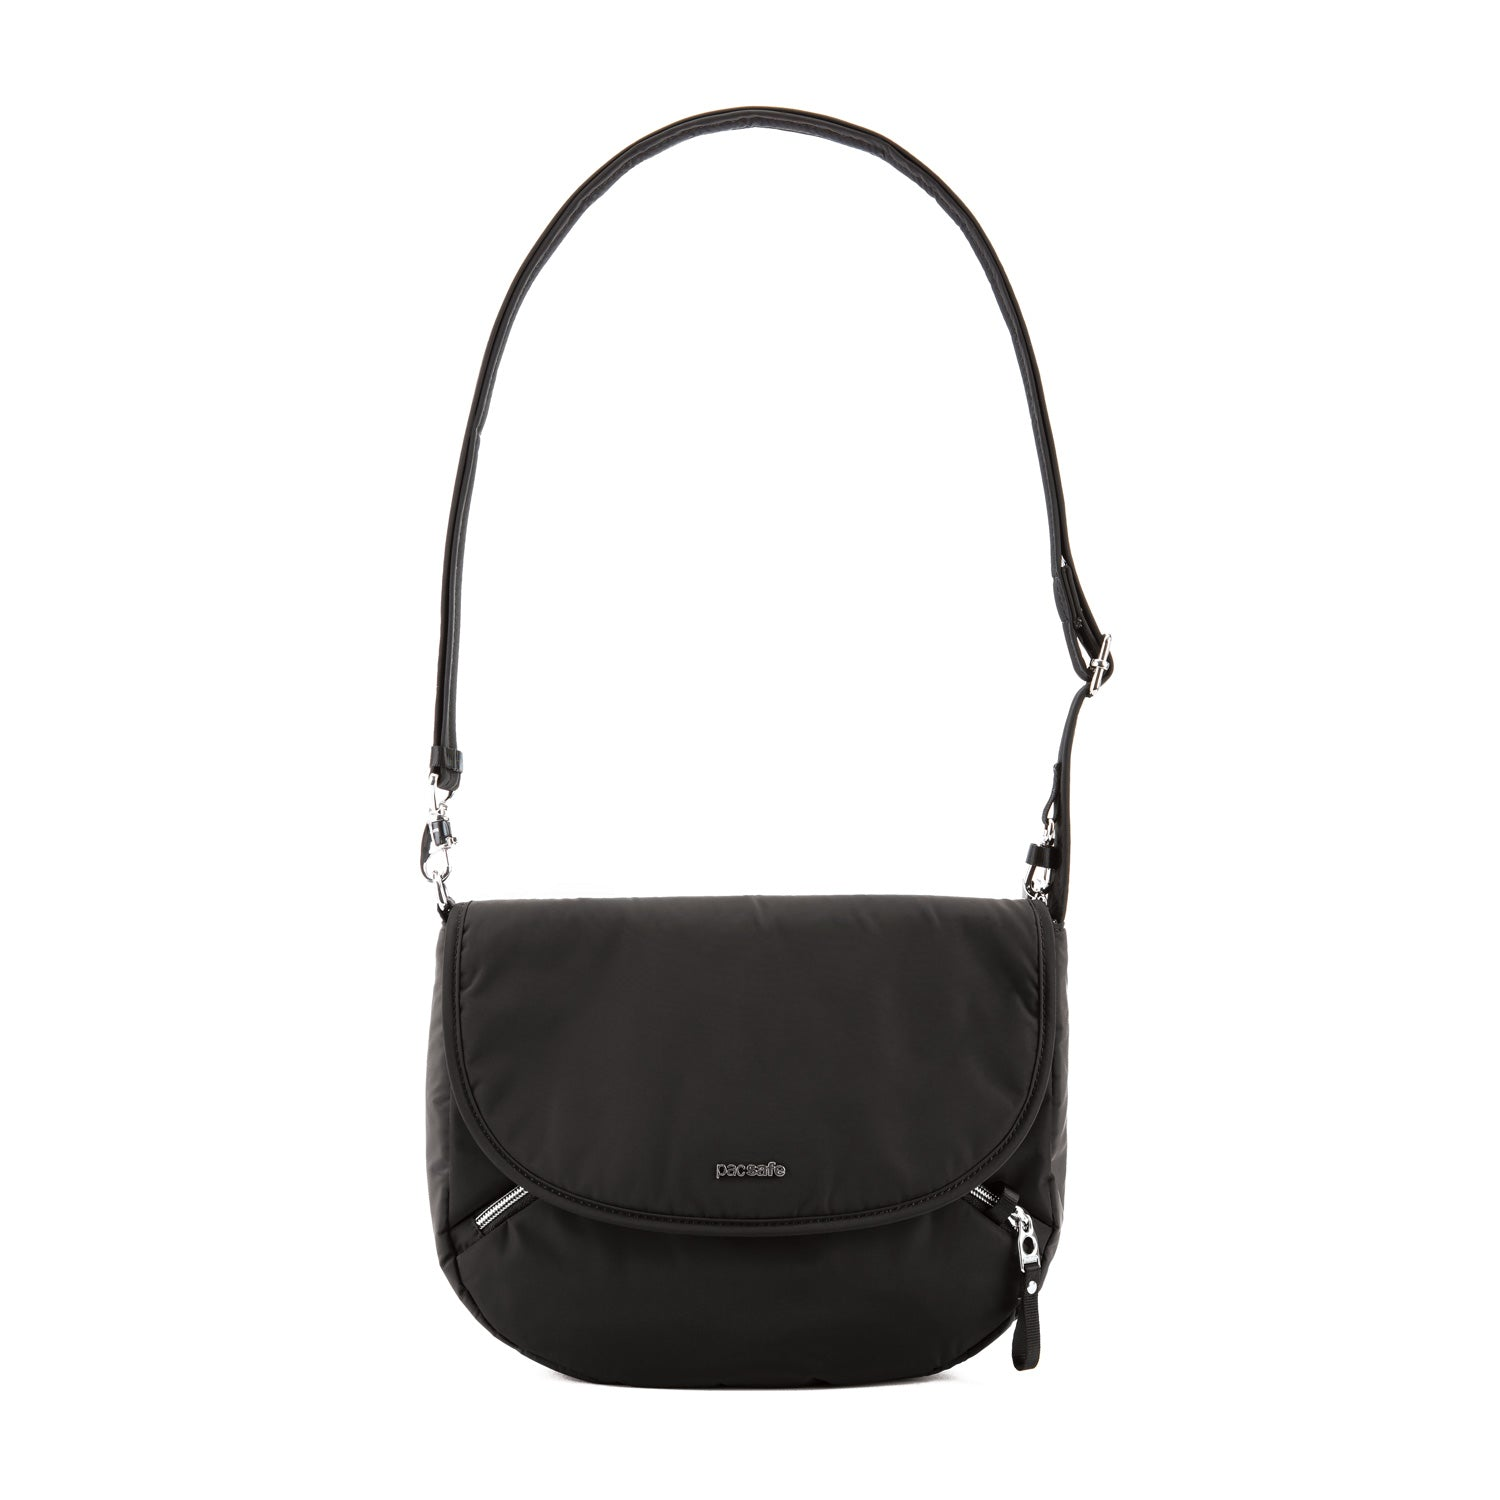 ca3bb5eed52a Pacsafe Stylesafe anti-theft crossbody bag